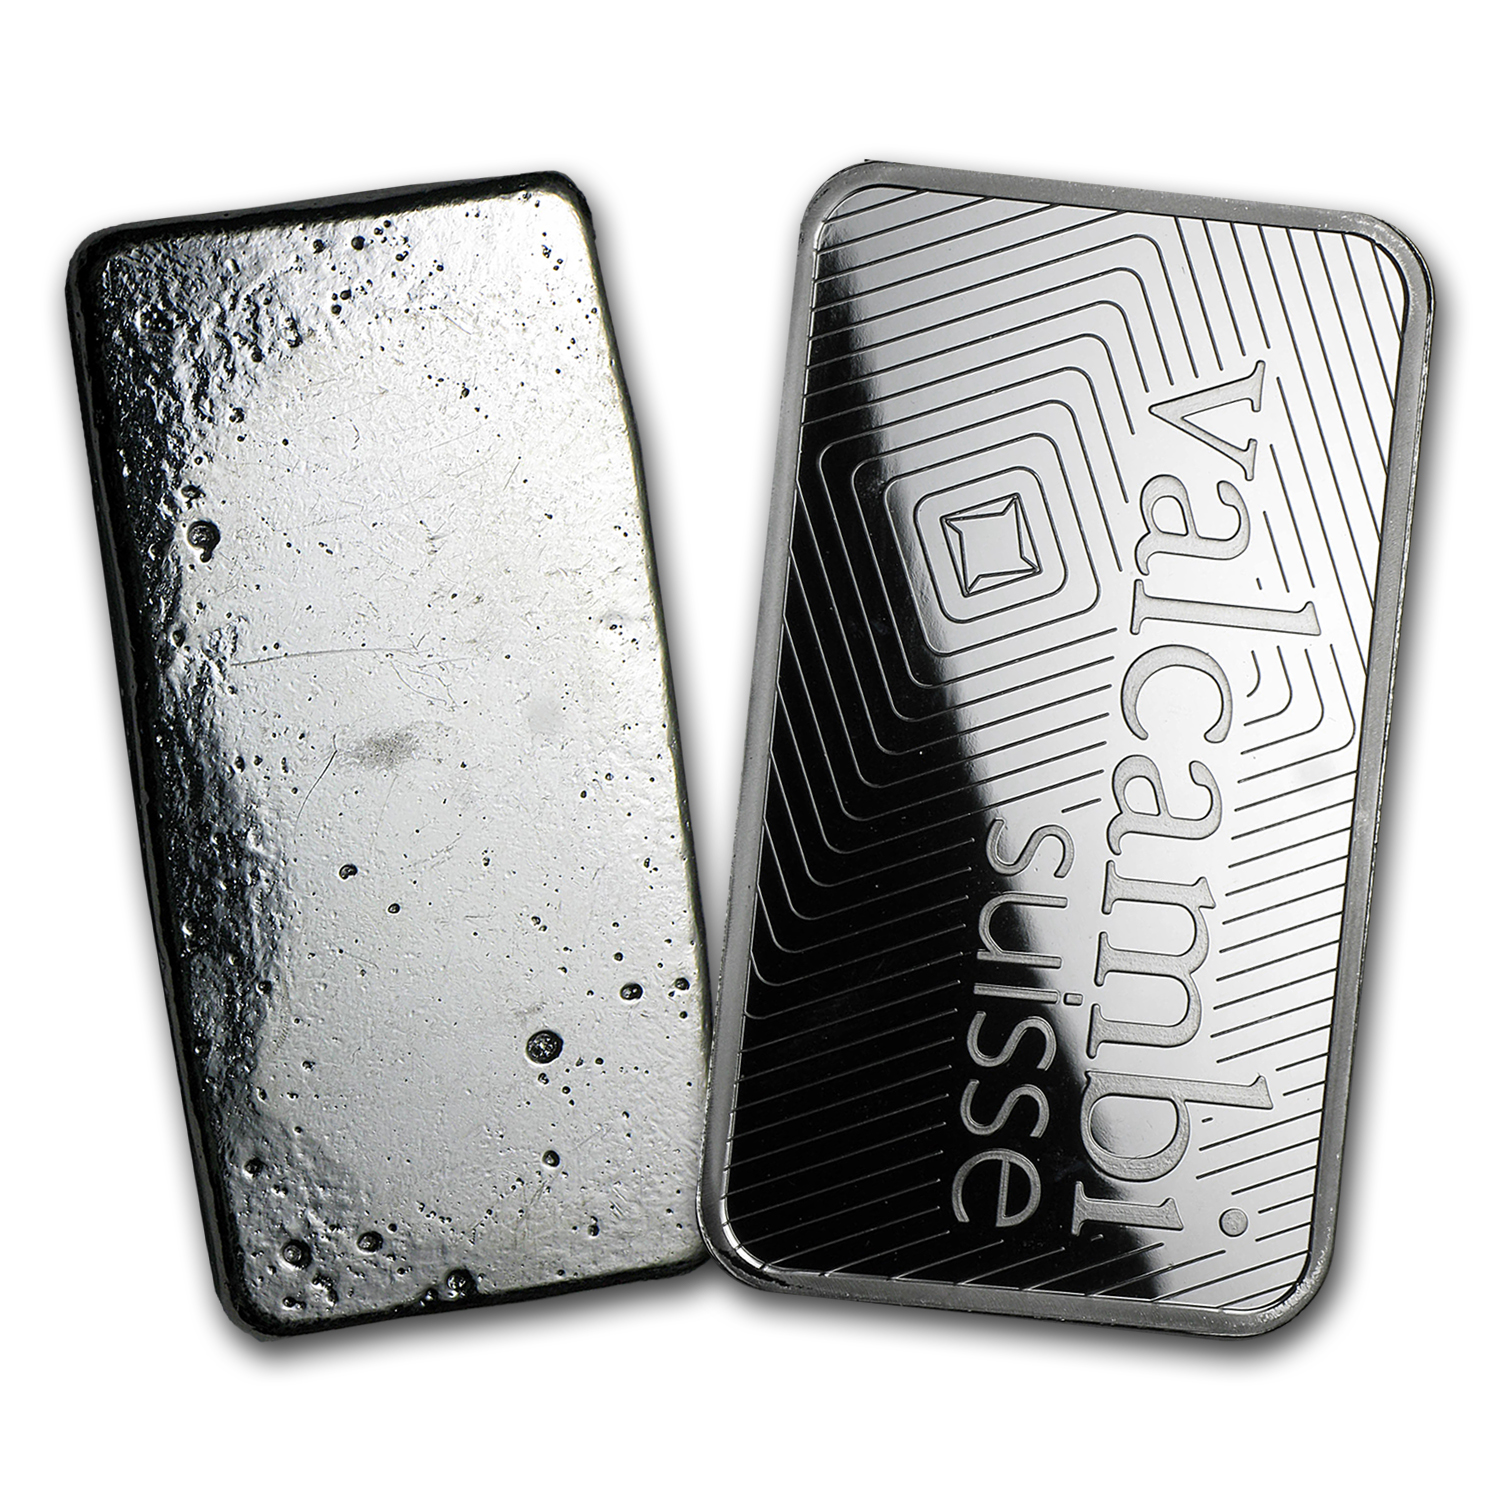 100 gram Silver Bars - Secondary Market